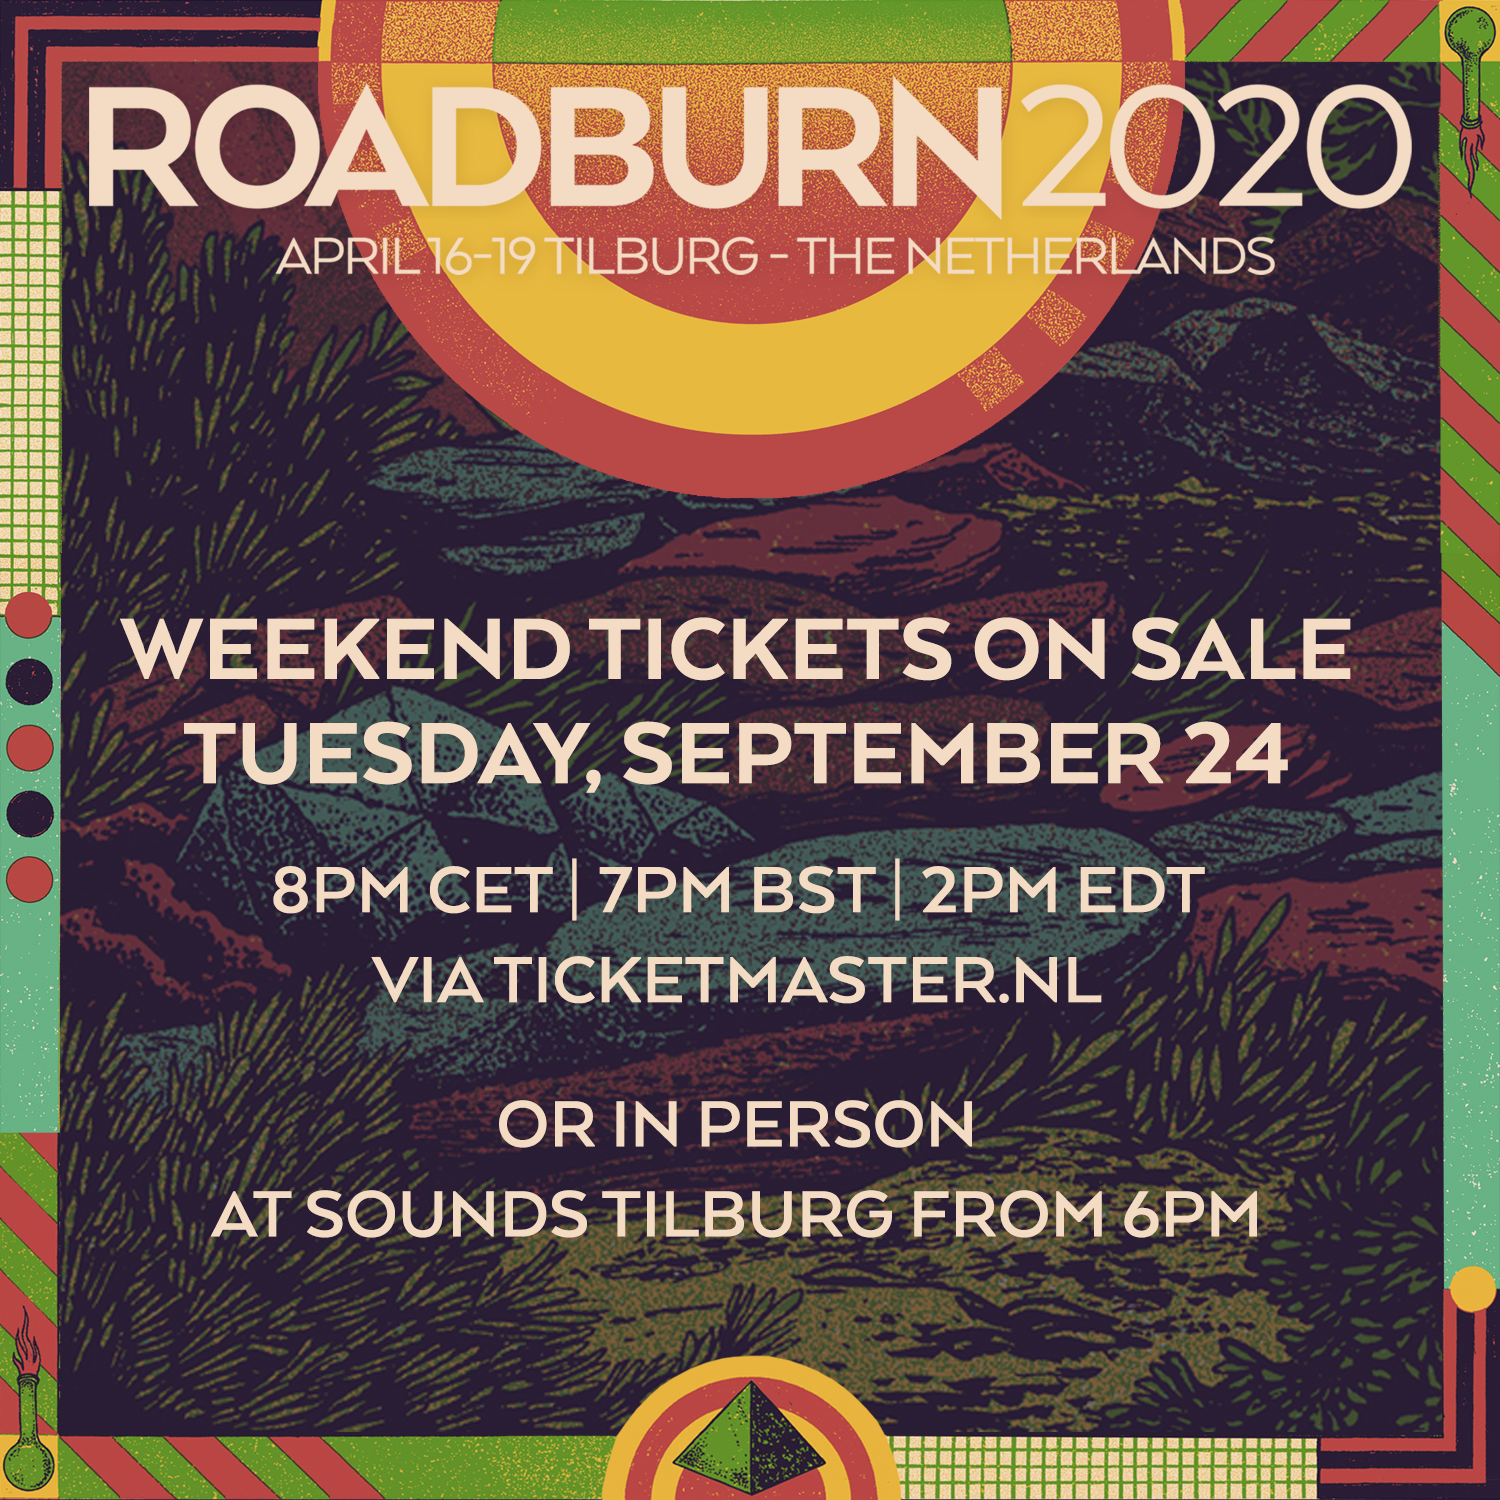 roadburn 2020 tickets